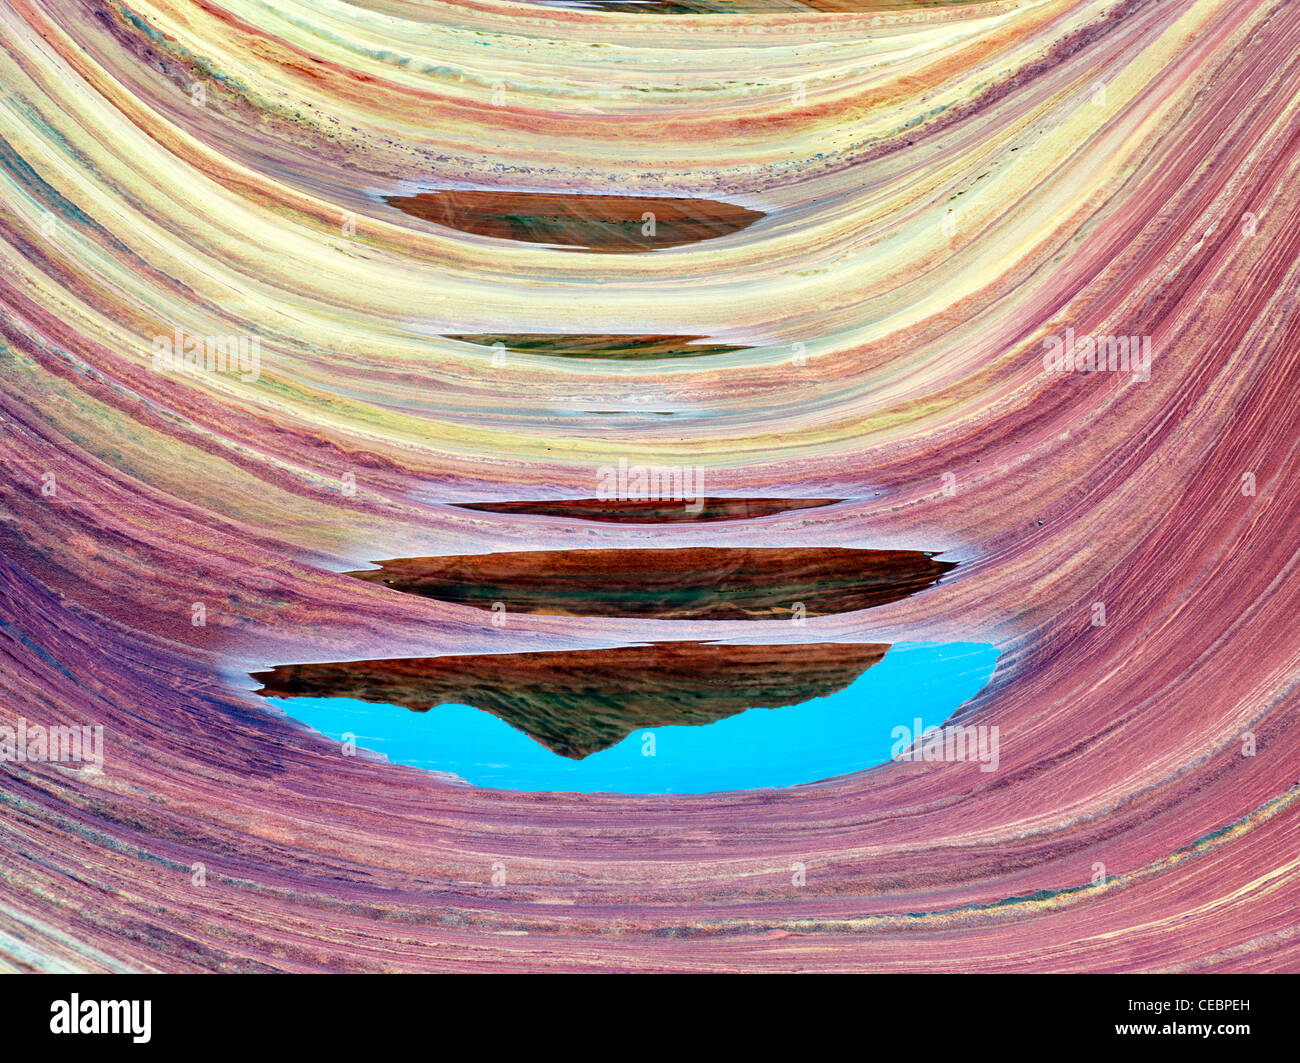 Sandtone Bildung und Wasserbecken in North Coyote Buttes, The Wave. Paria Canyon-Vermillion Cliffs Wilderness. Utah Stockbild